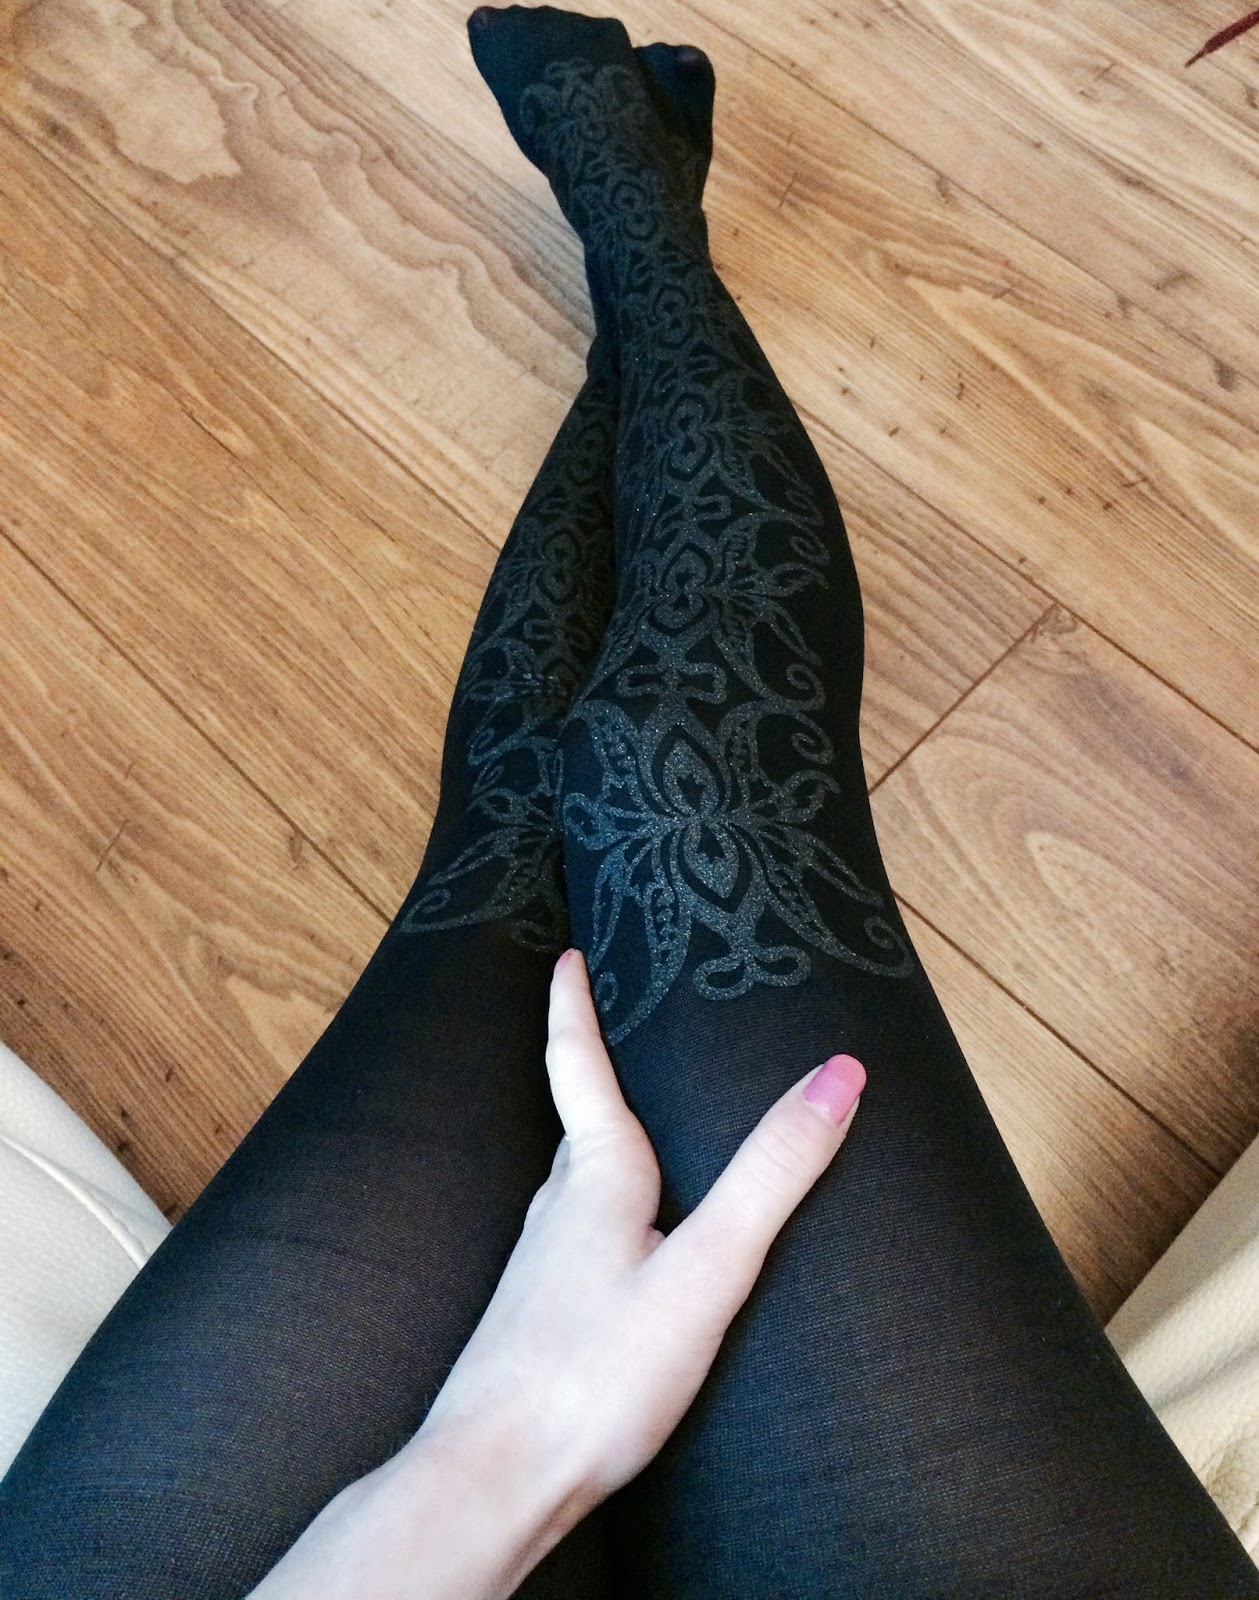 867a929e05b Gipsy tights review